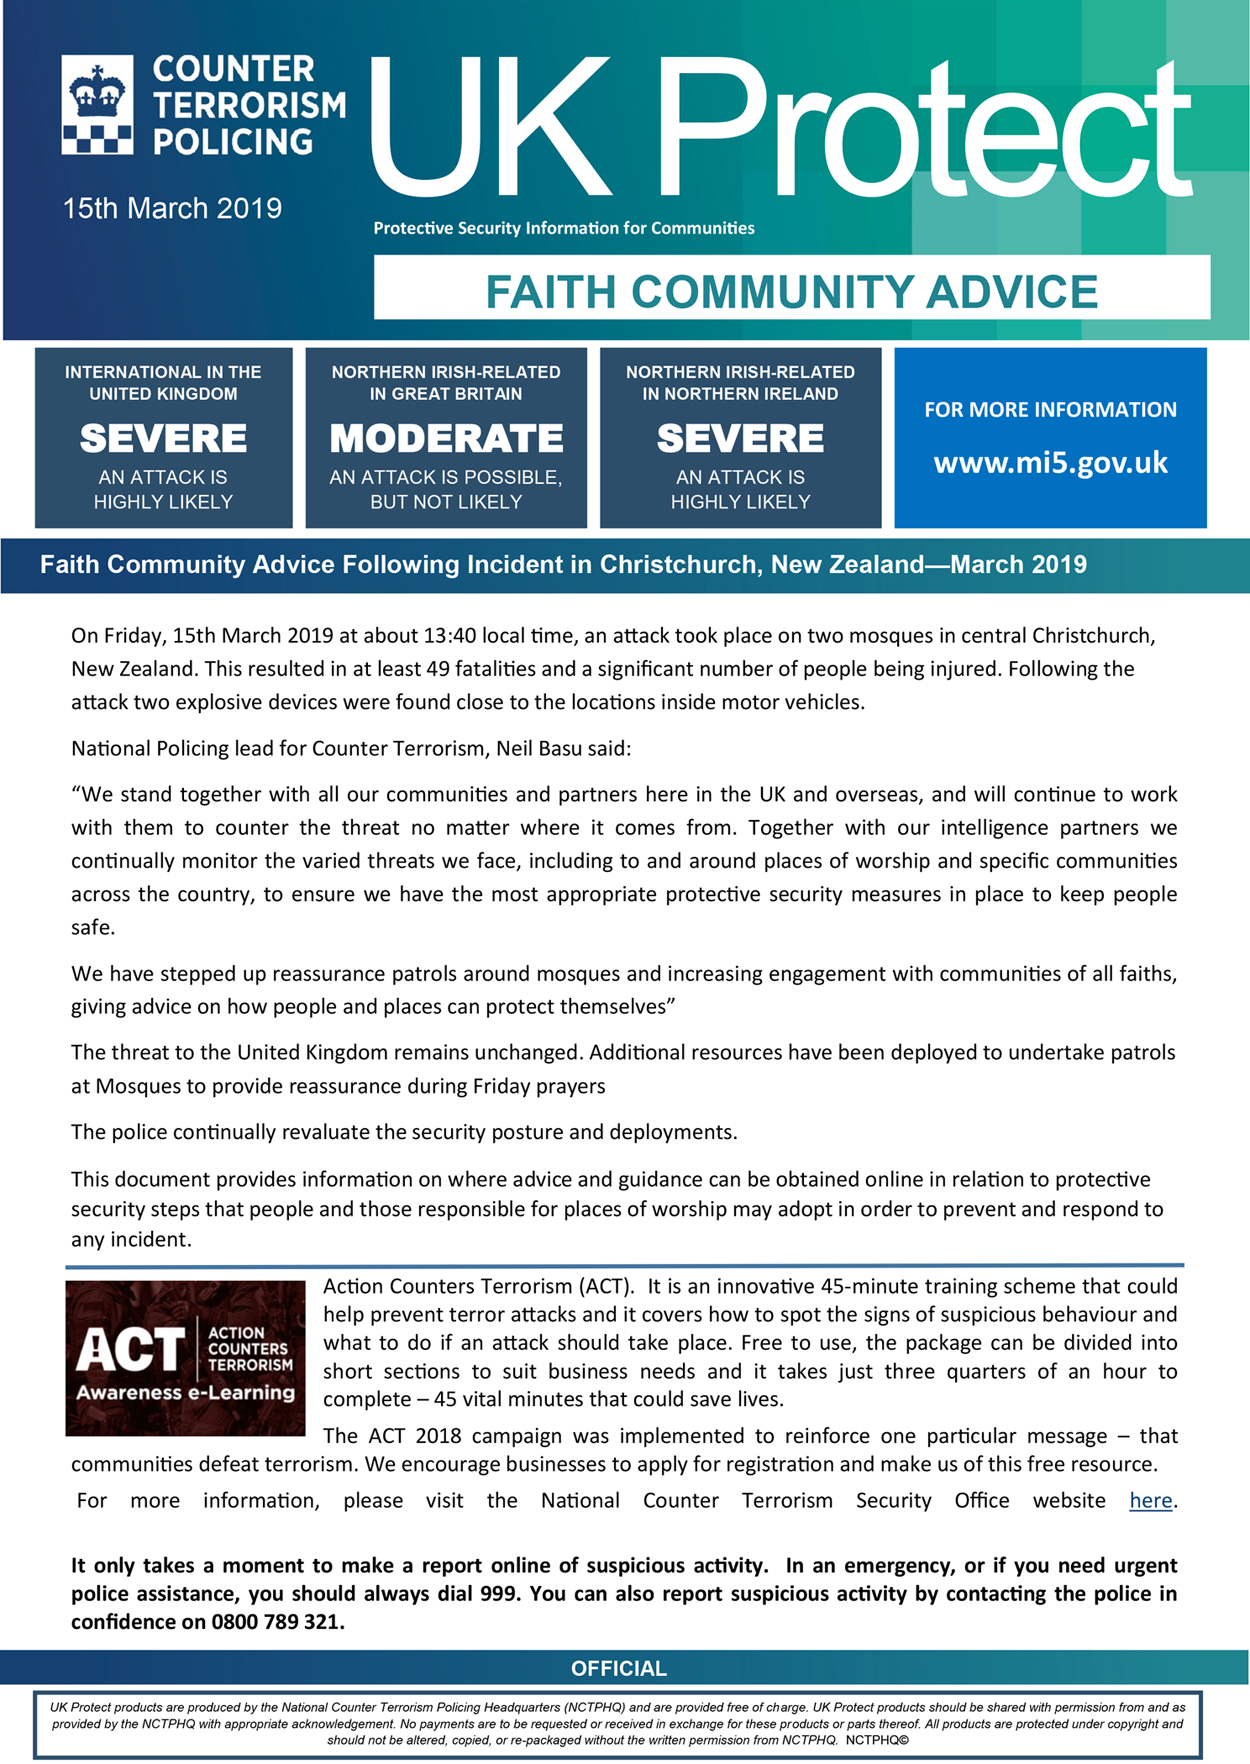 UK Protect - Advice to Faith C